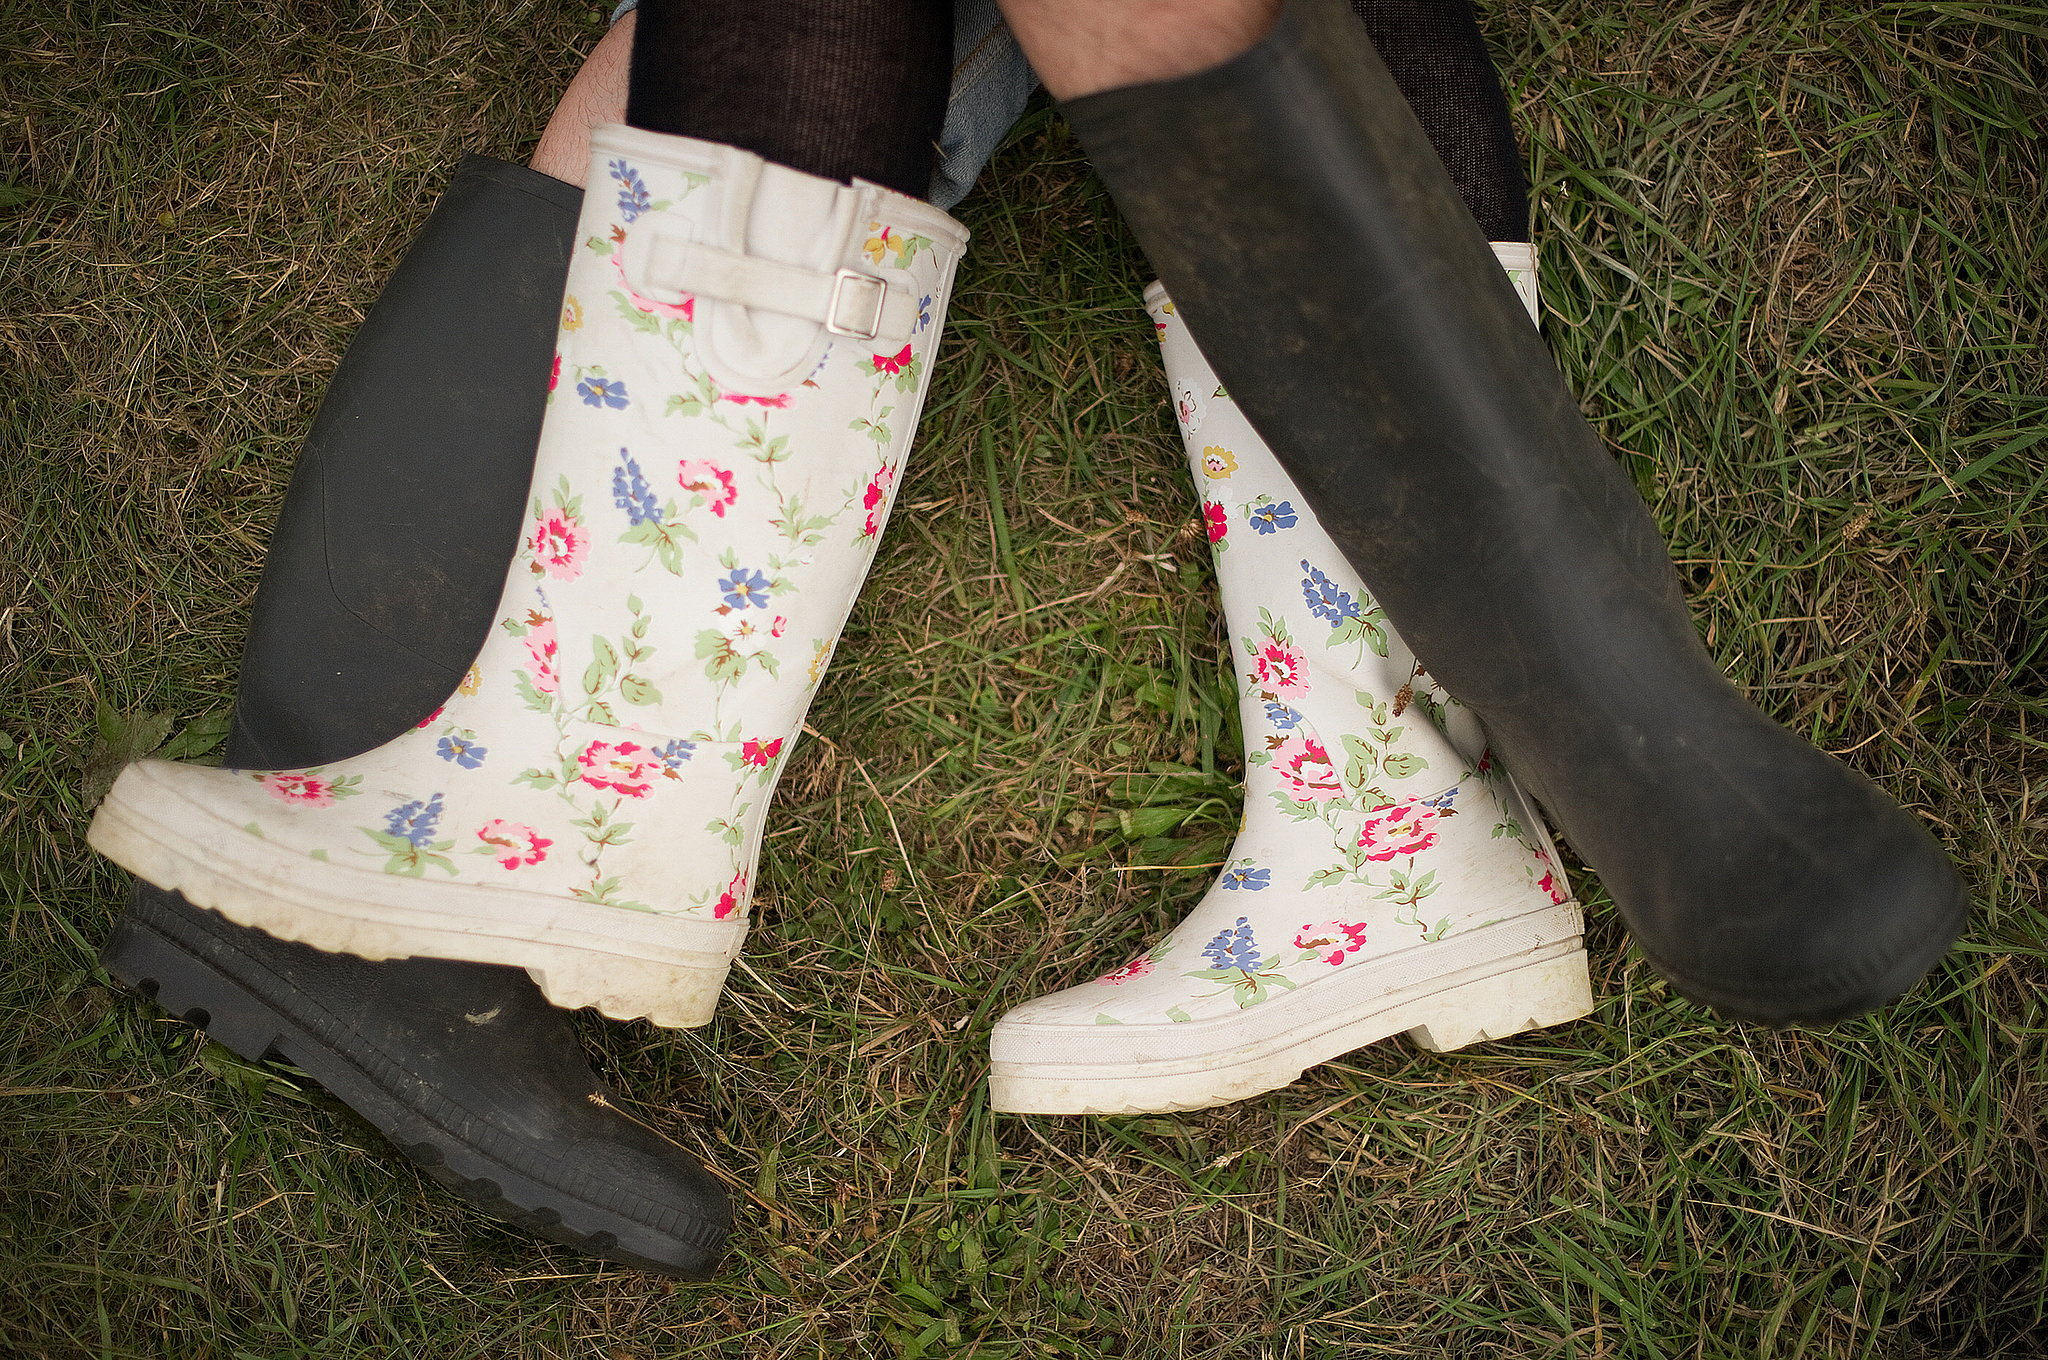 A couple in rainboots laid in the grass at the Big Chill festival near Ledbury in Herefordshire, England.